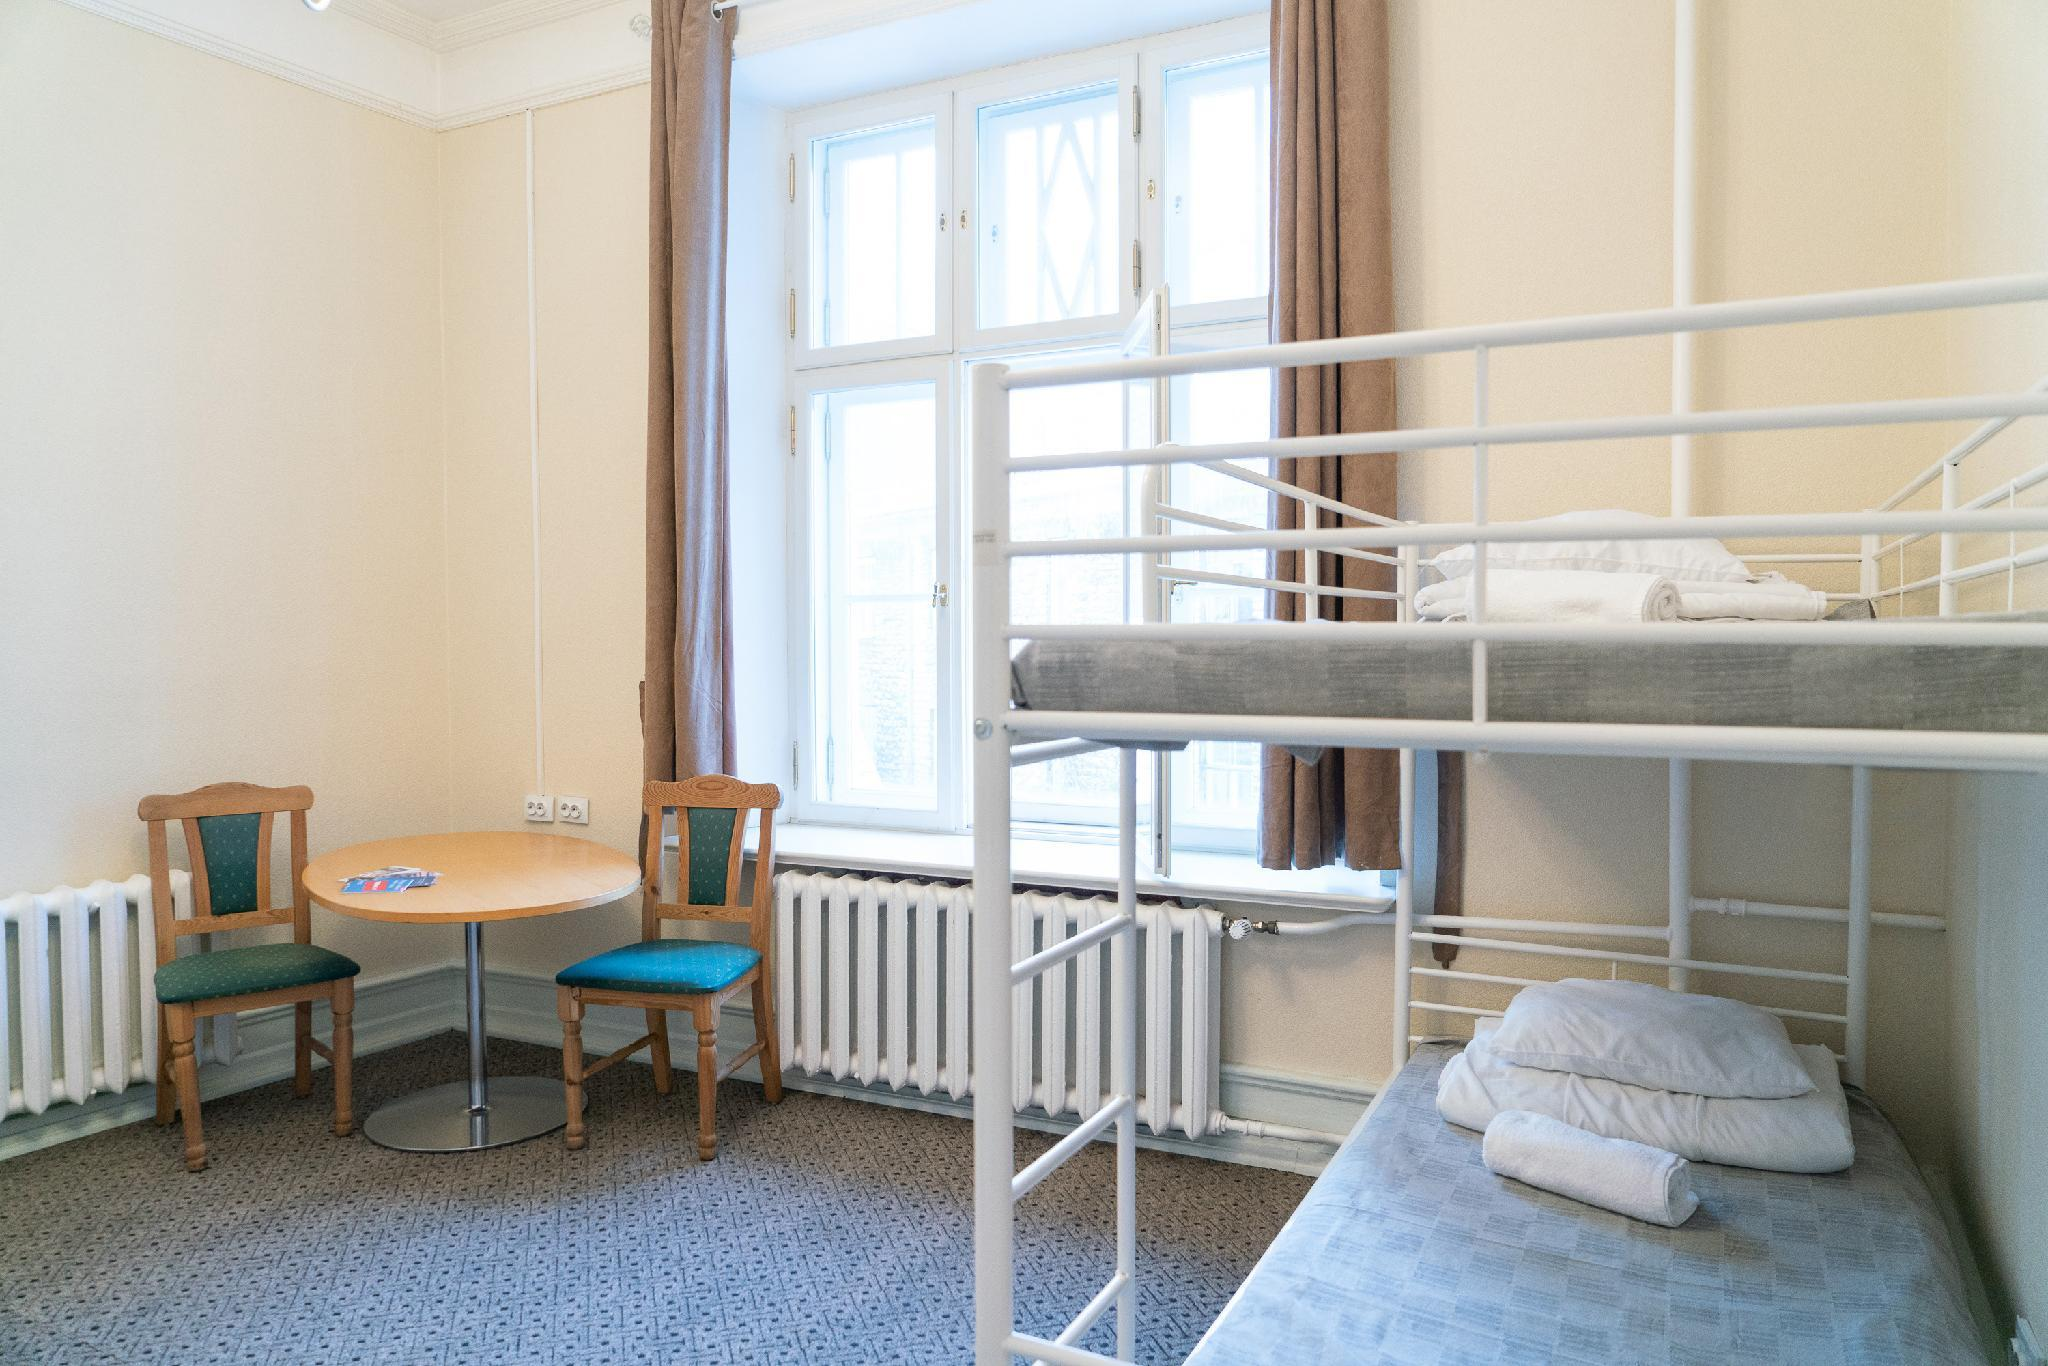 1 Person in 4-Bed Dormitory with Shared Bathroom - Female Only